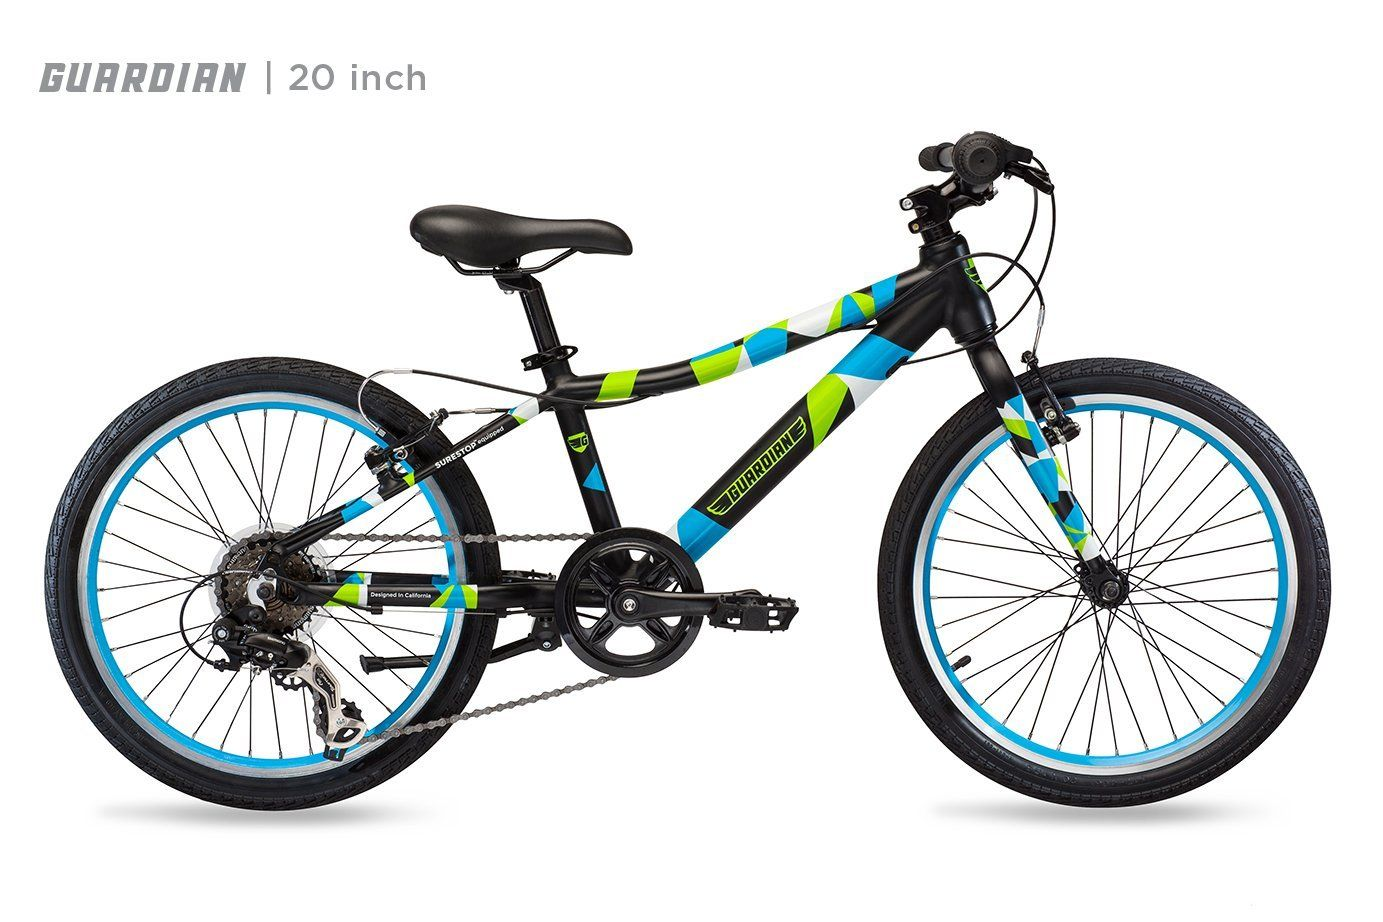 Guardian Lightweight Kids Bike 20 Inch And 24 Inch Safe Patented